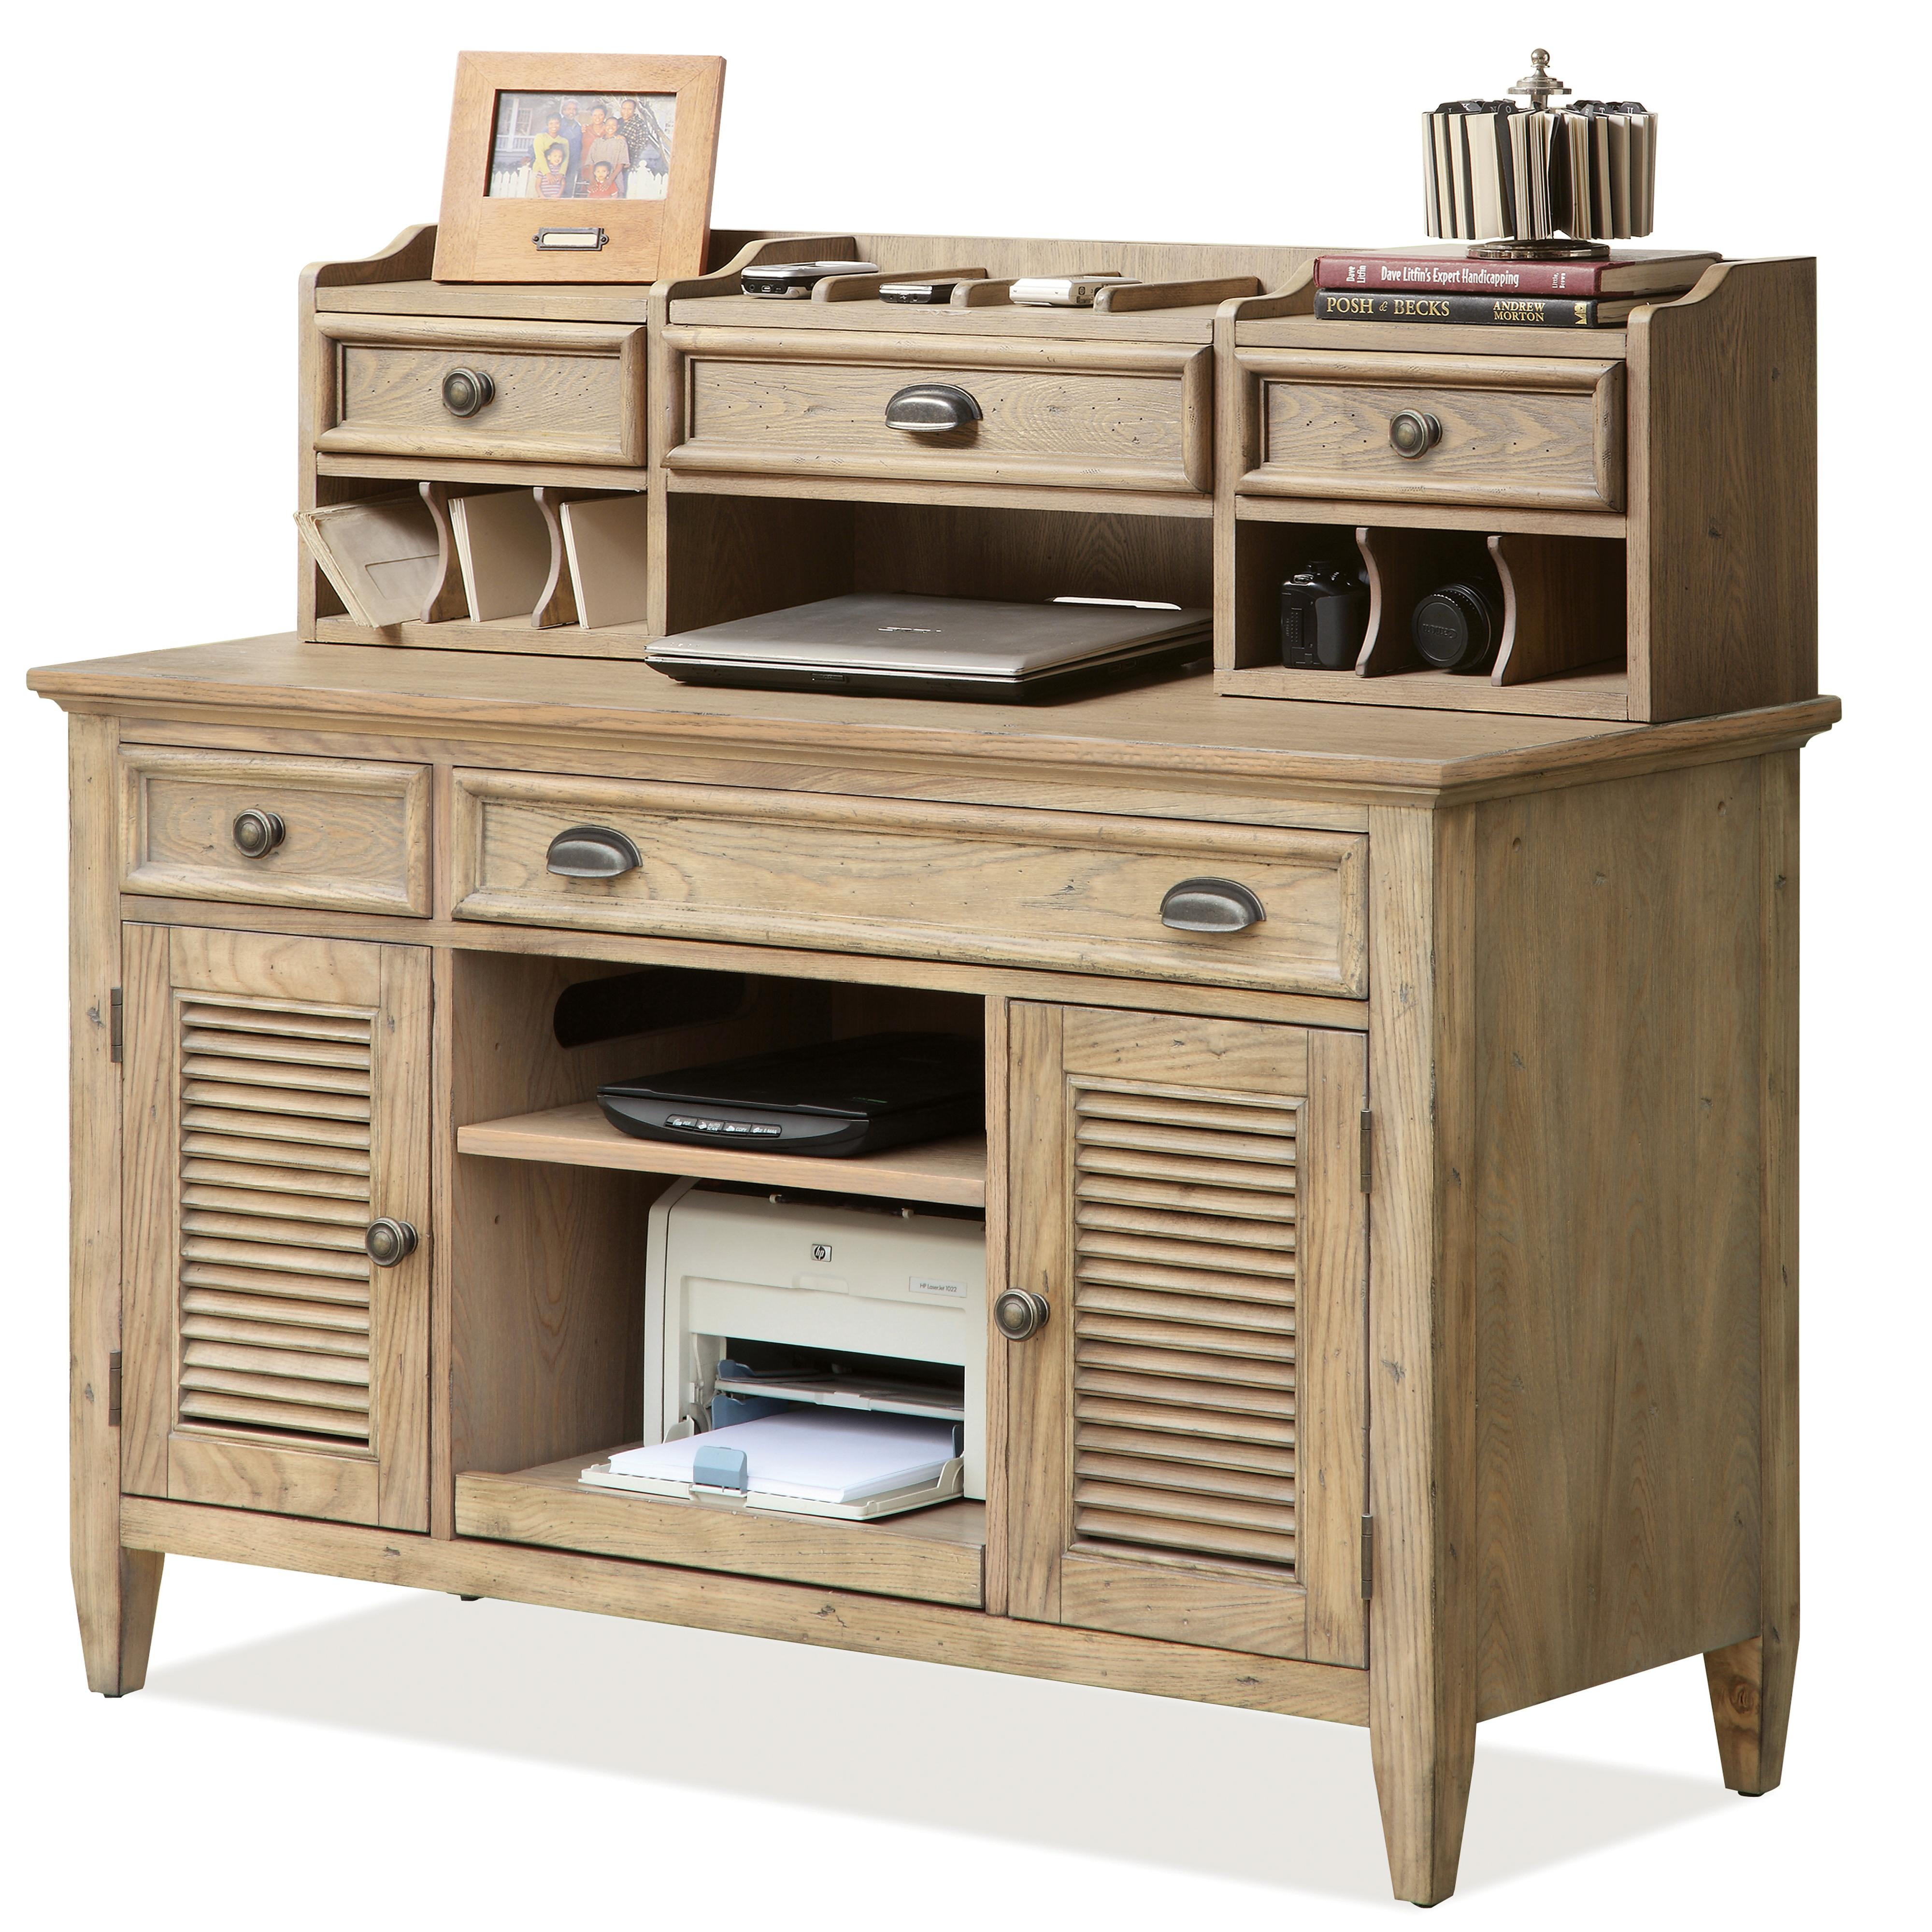 Riverside Furniture Coventry Credenza & Small Hutch - Item Number: 32423+26